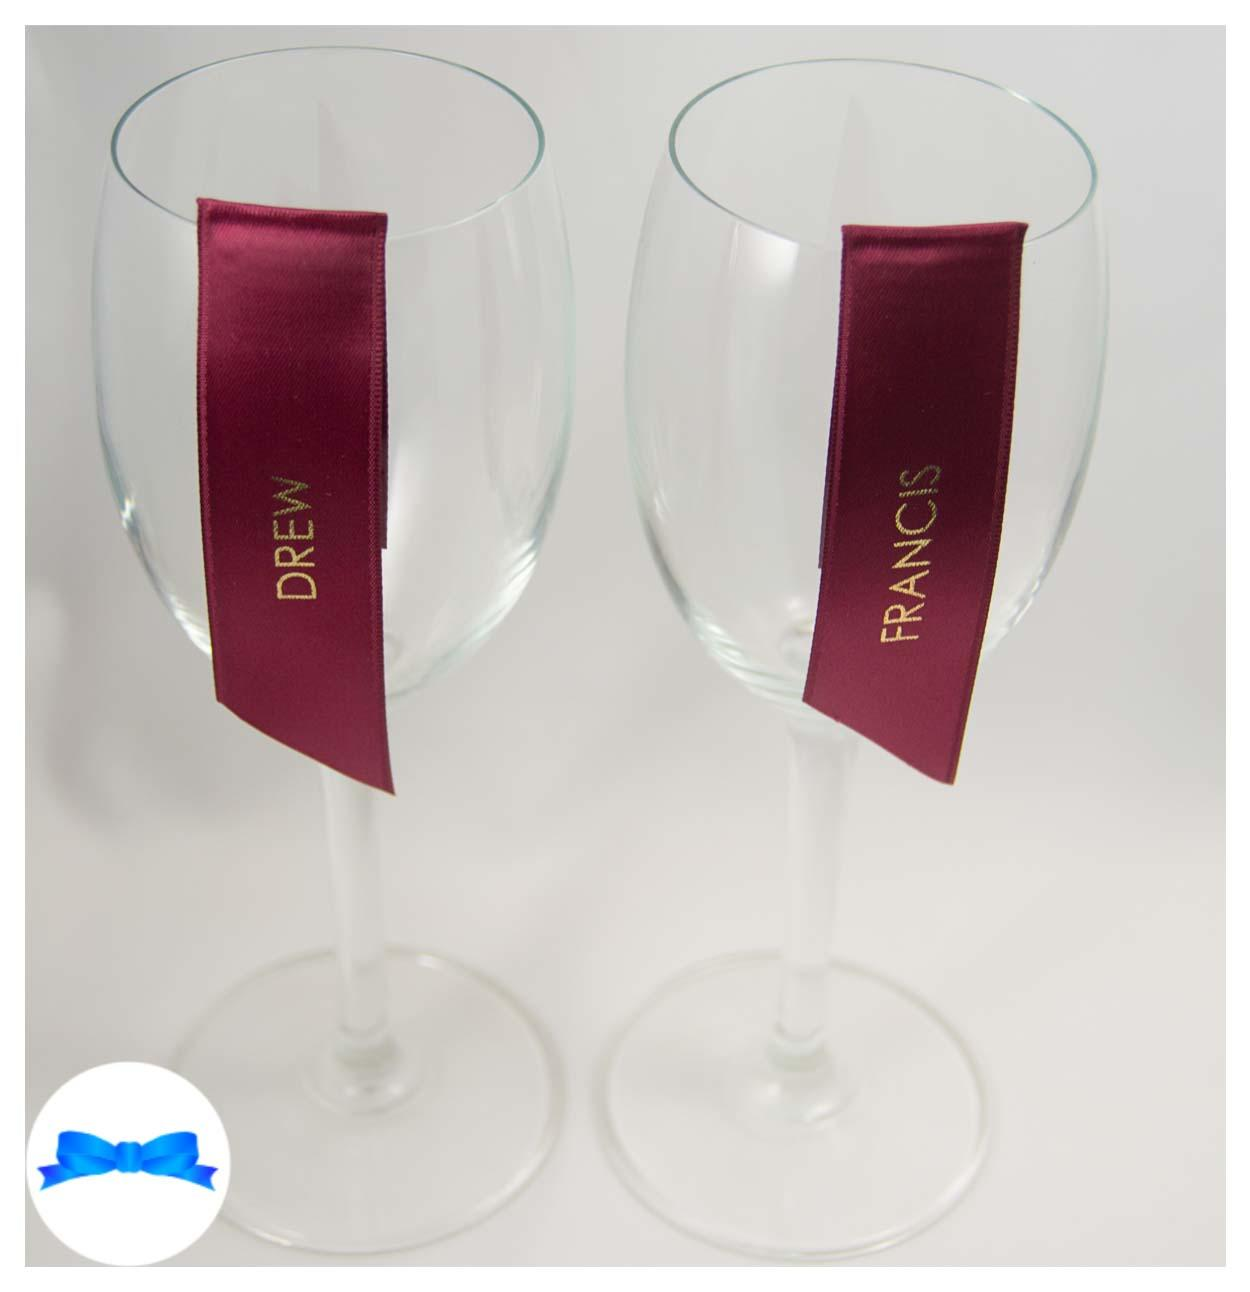 Guest name wine glass ribbons Burgundy and gold